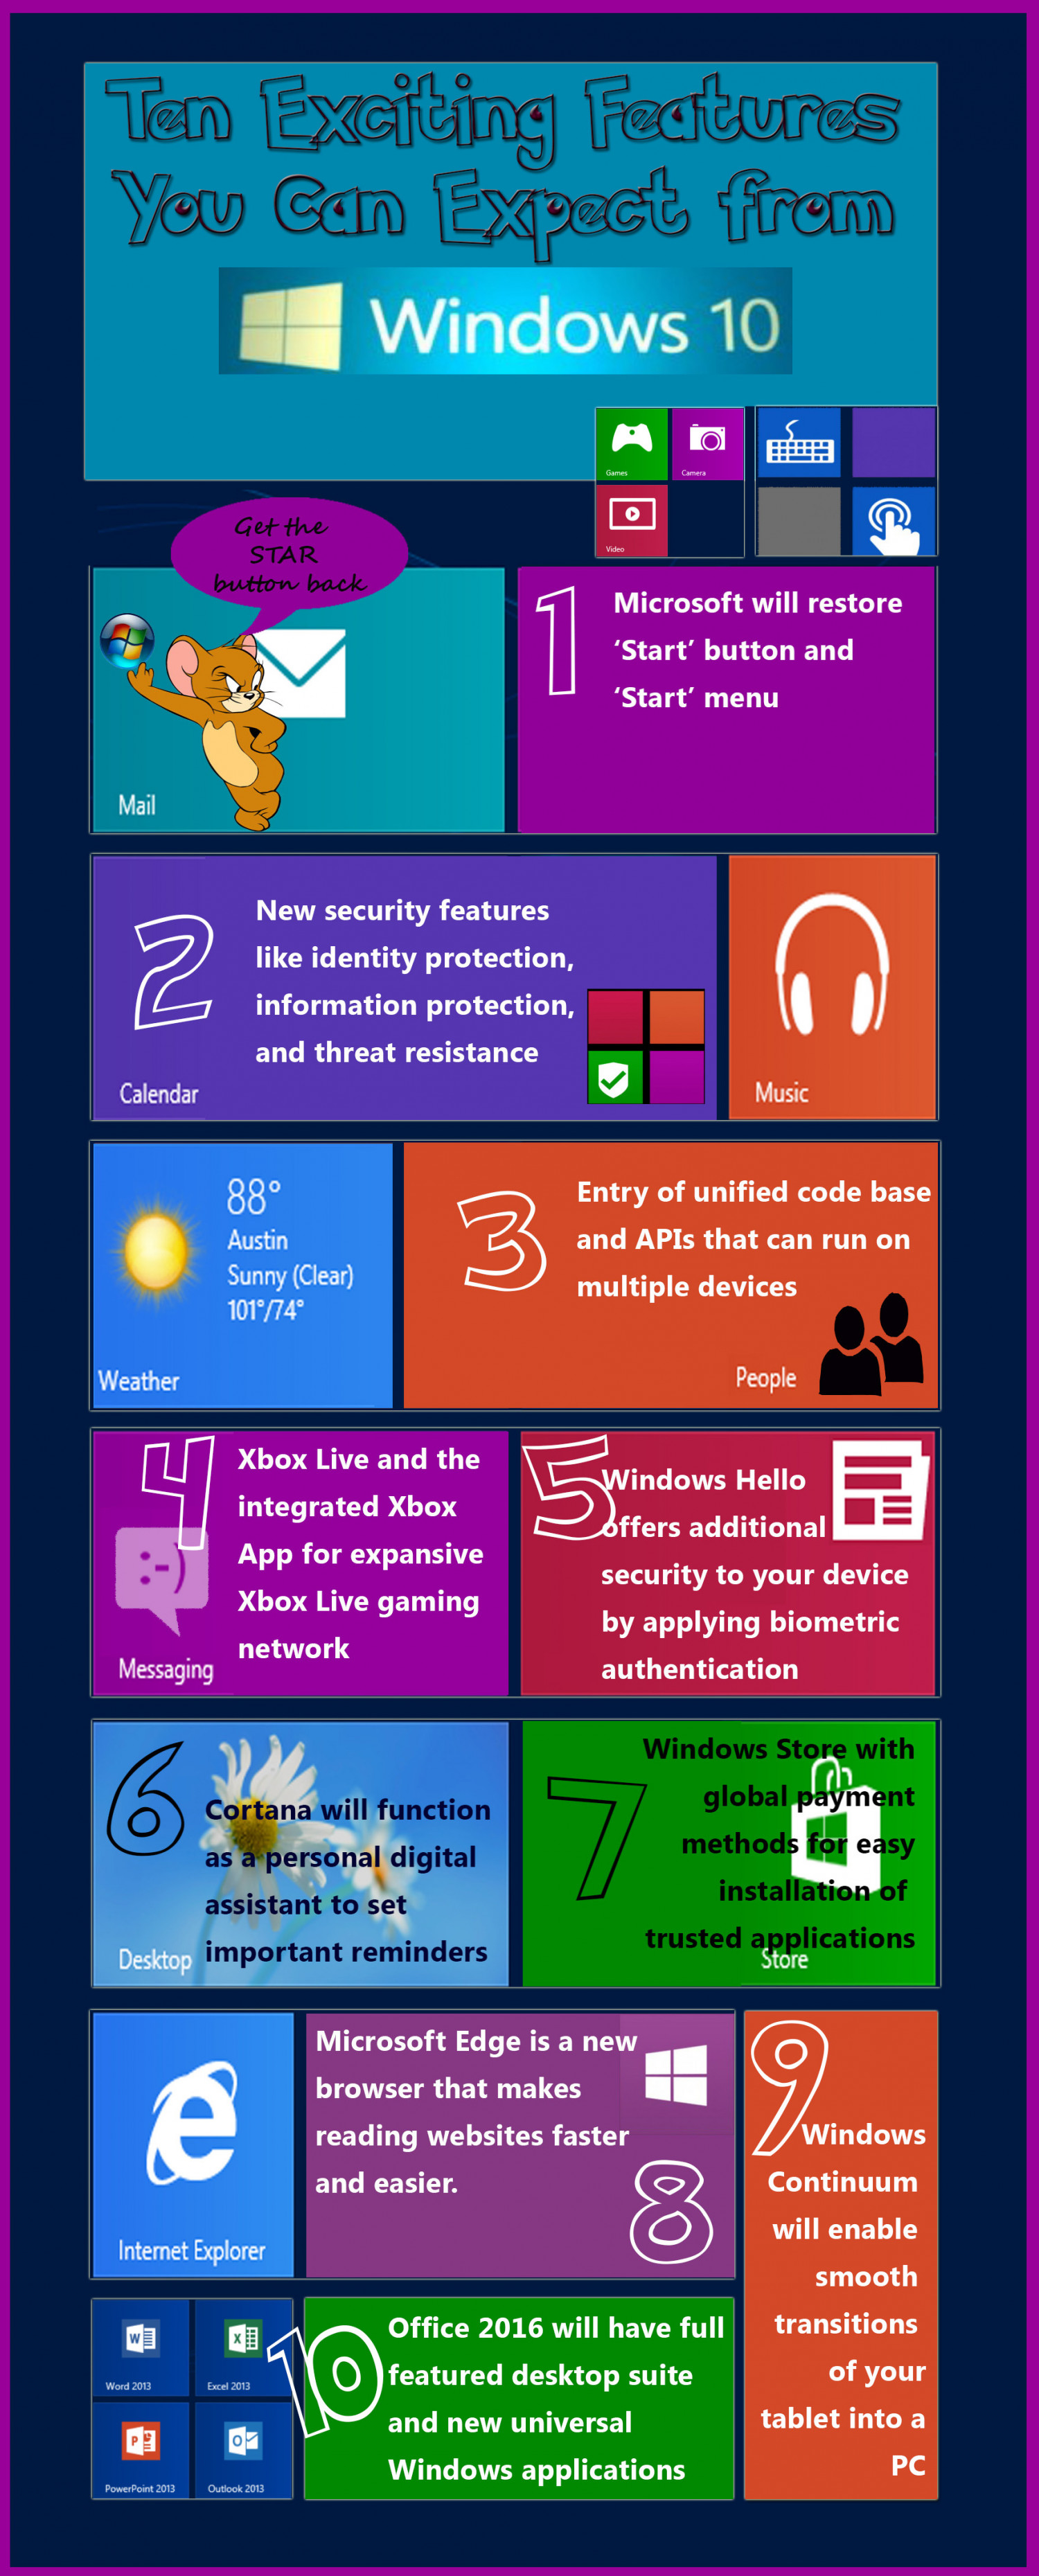 Ten Exciting Features You Can Expect from Windows 10 Infographic